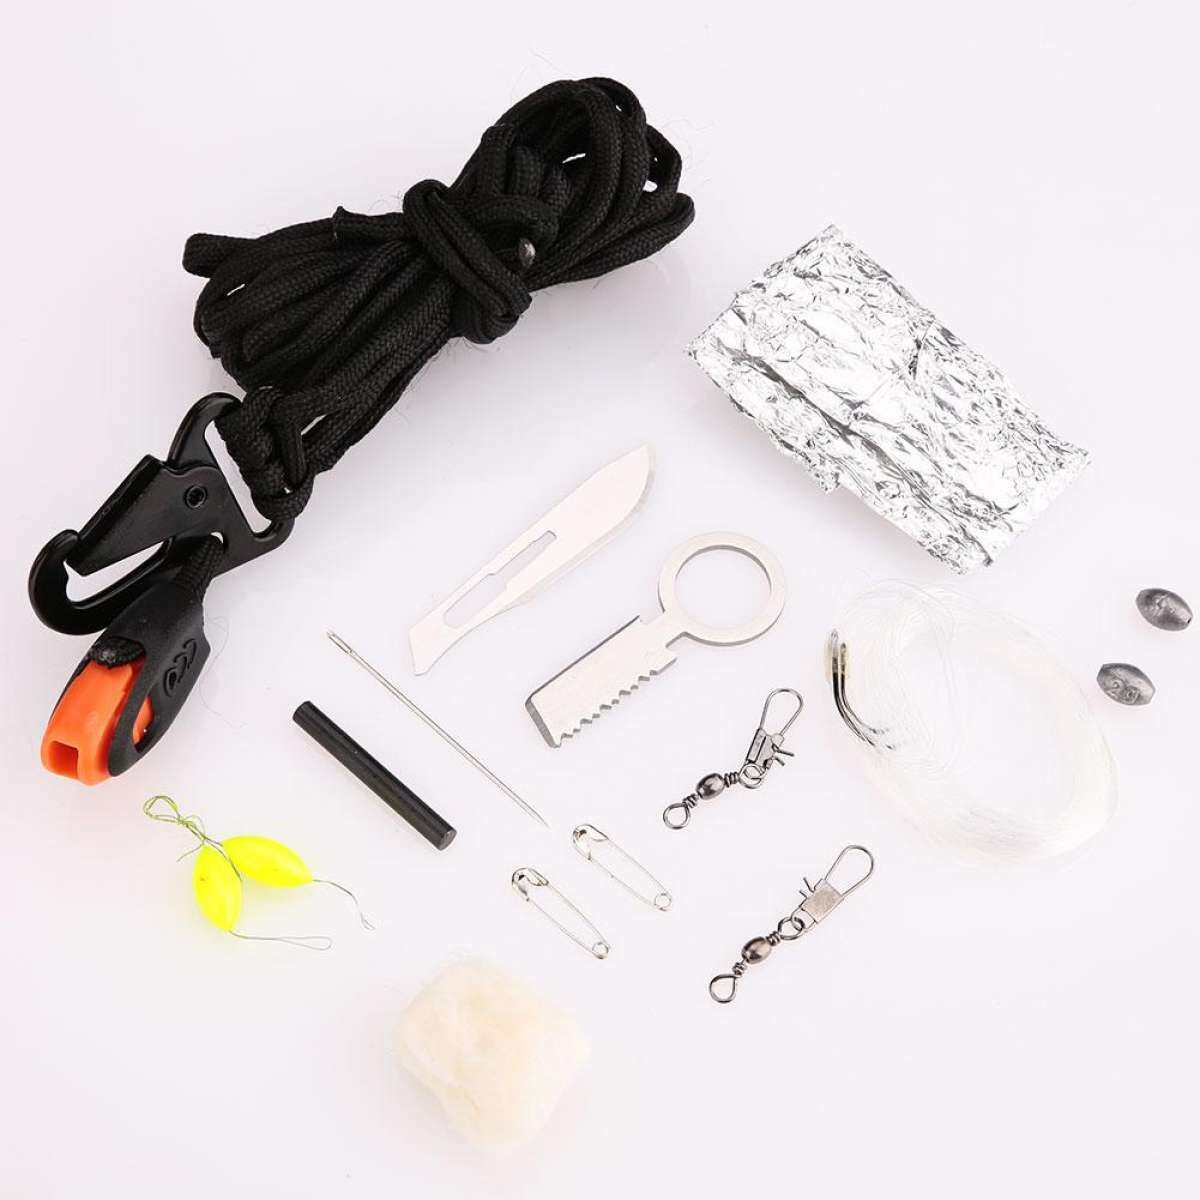 (Free Shipping for WM - Klang Valley,WM - Non Klang Valley,EM - Sabah)SCIOLTO SPORTS 14-in-1 Paracord Tool Survival Rescue Survival Emergency Kit Camping Fishing